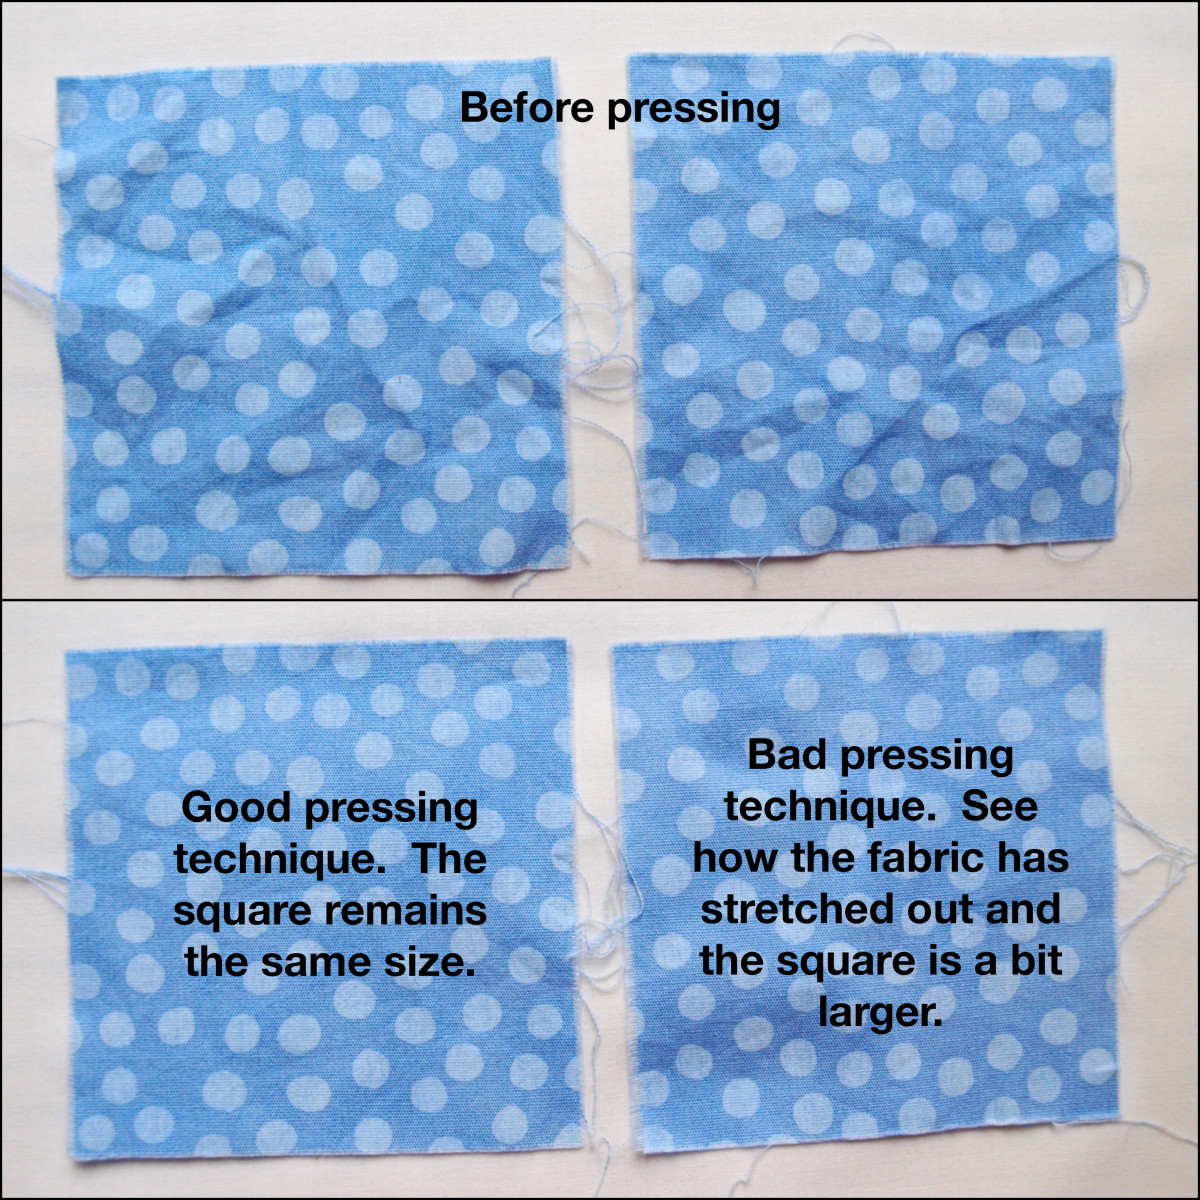 It's subtle, but the fabric square on the bottom right is now slightly skewed because of bad pressing.  That will make a difference when using it in a quilt block.